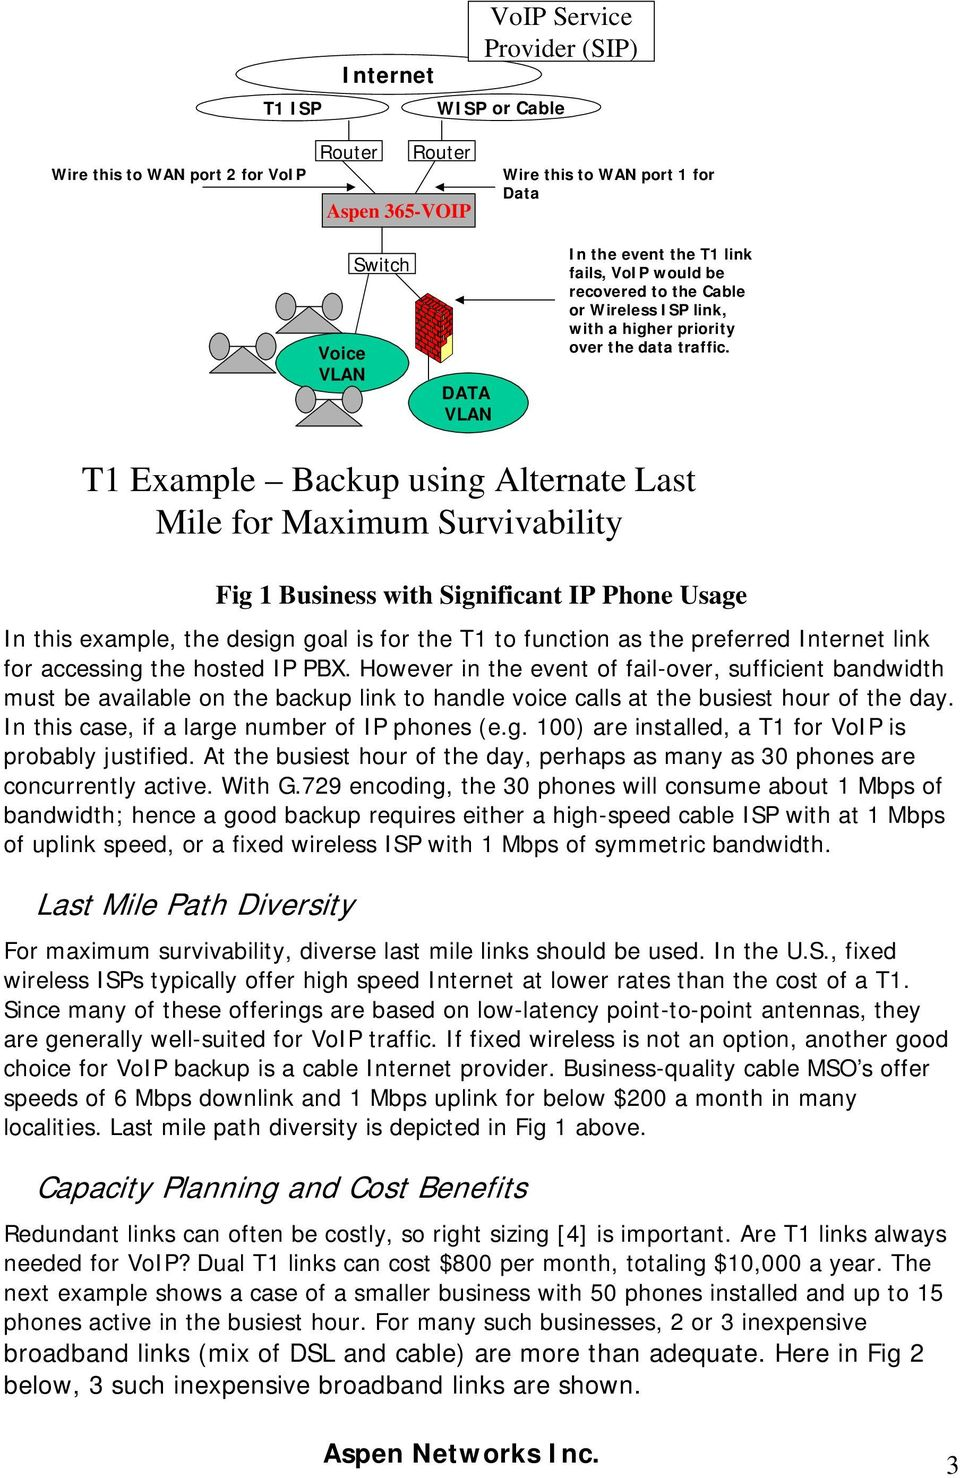 T1 Example Backup using Alternate Last Mile for Maximum Survivability Fig 1 Business with Significant IP Phone Usage In this example, the design goal is for the T1 to function as the preferred